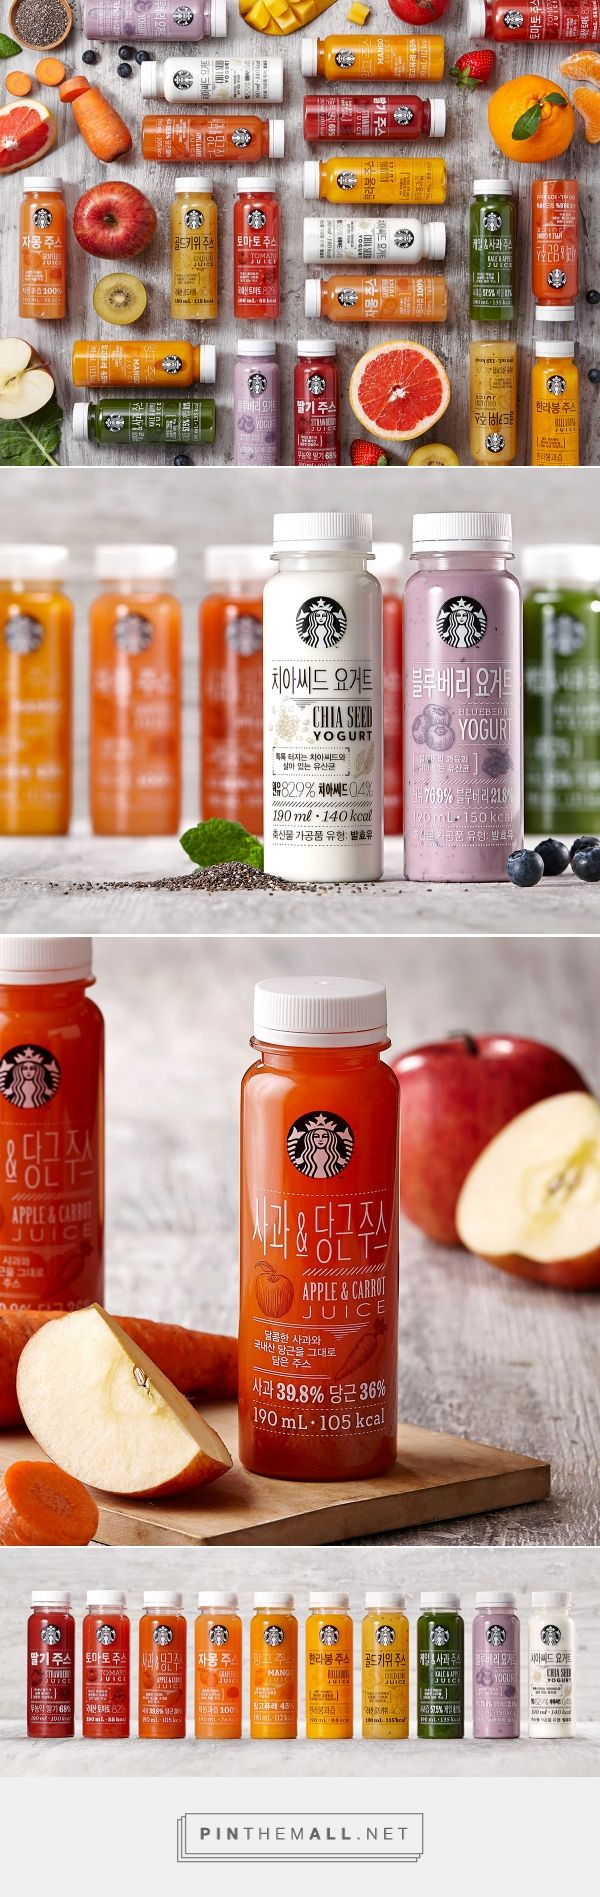 Graphic design, illustration and packaging for Starbucks Juice & Yogurt on Behance by Eulie Lee Seoul, Korea curated by Packaging Diva PD. Korea's ready-to-drink is a healthy alternative.